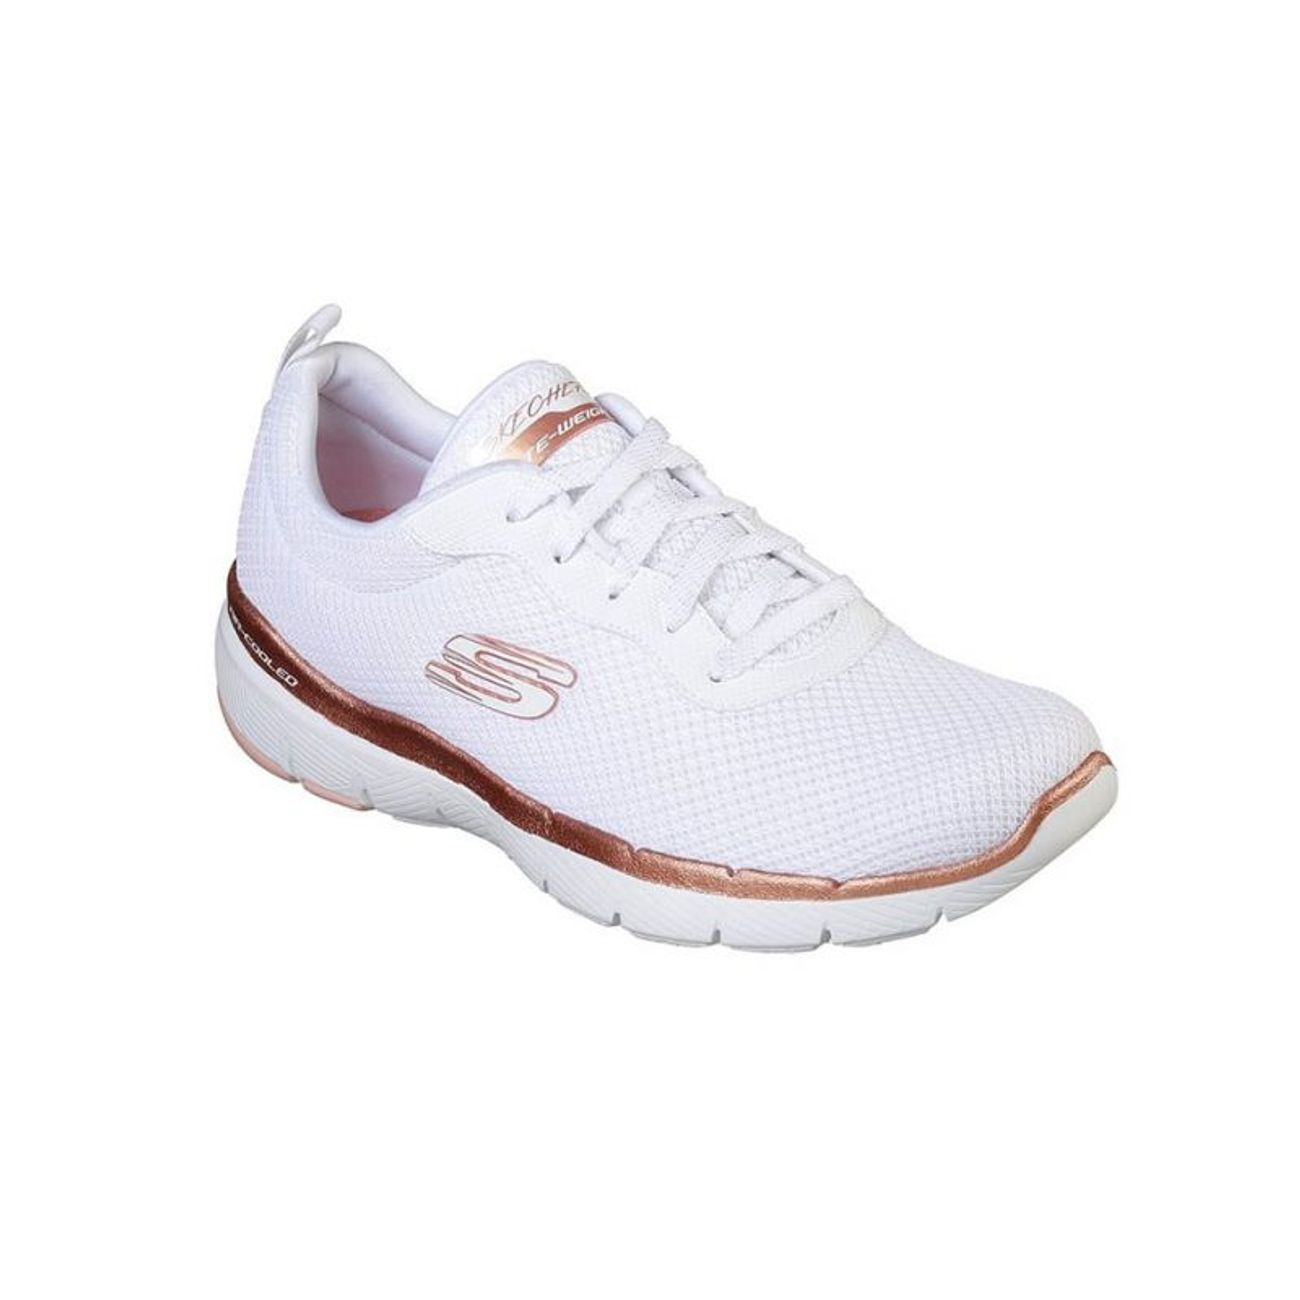 Adulte Blanches Sk13070 Appeal Skechers Femme Padel Wtrg 3 0 Flex zGqSVUpM